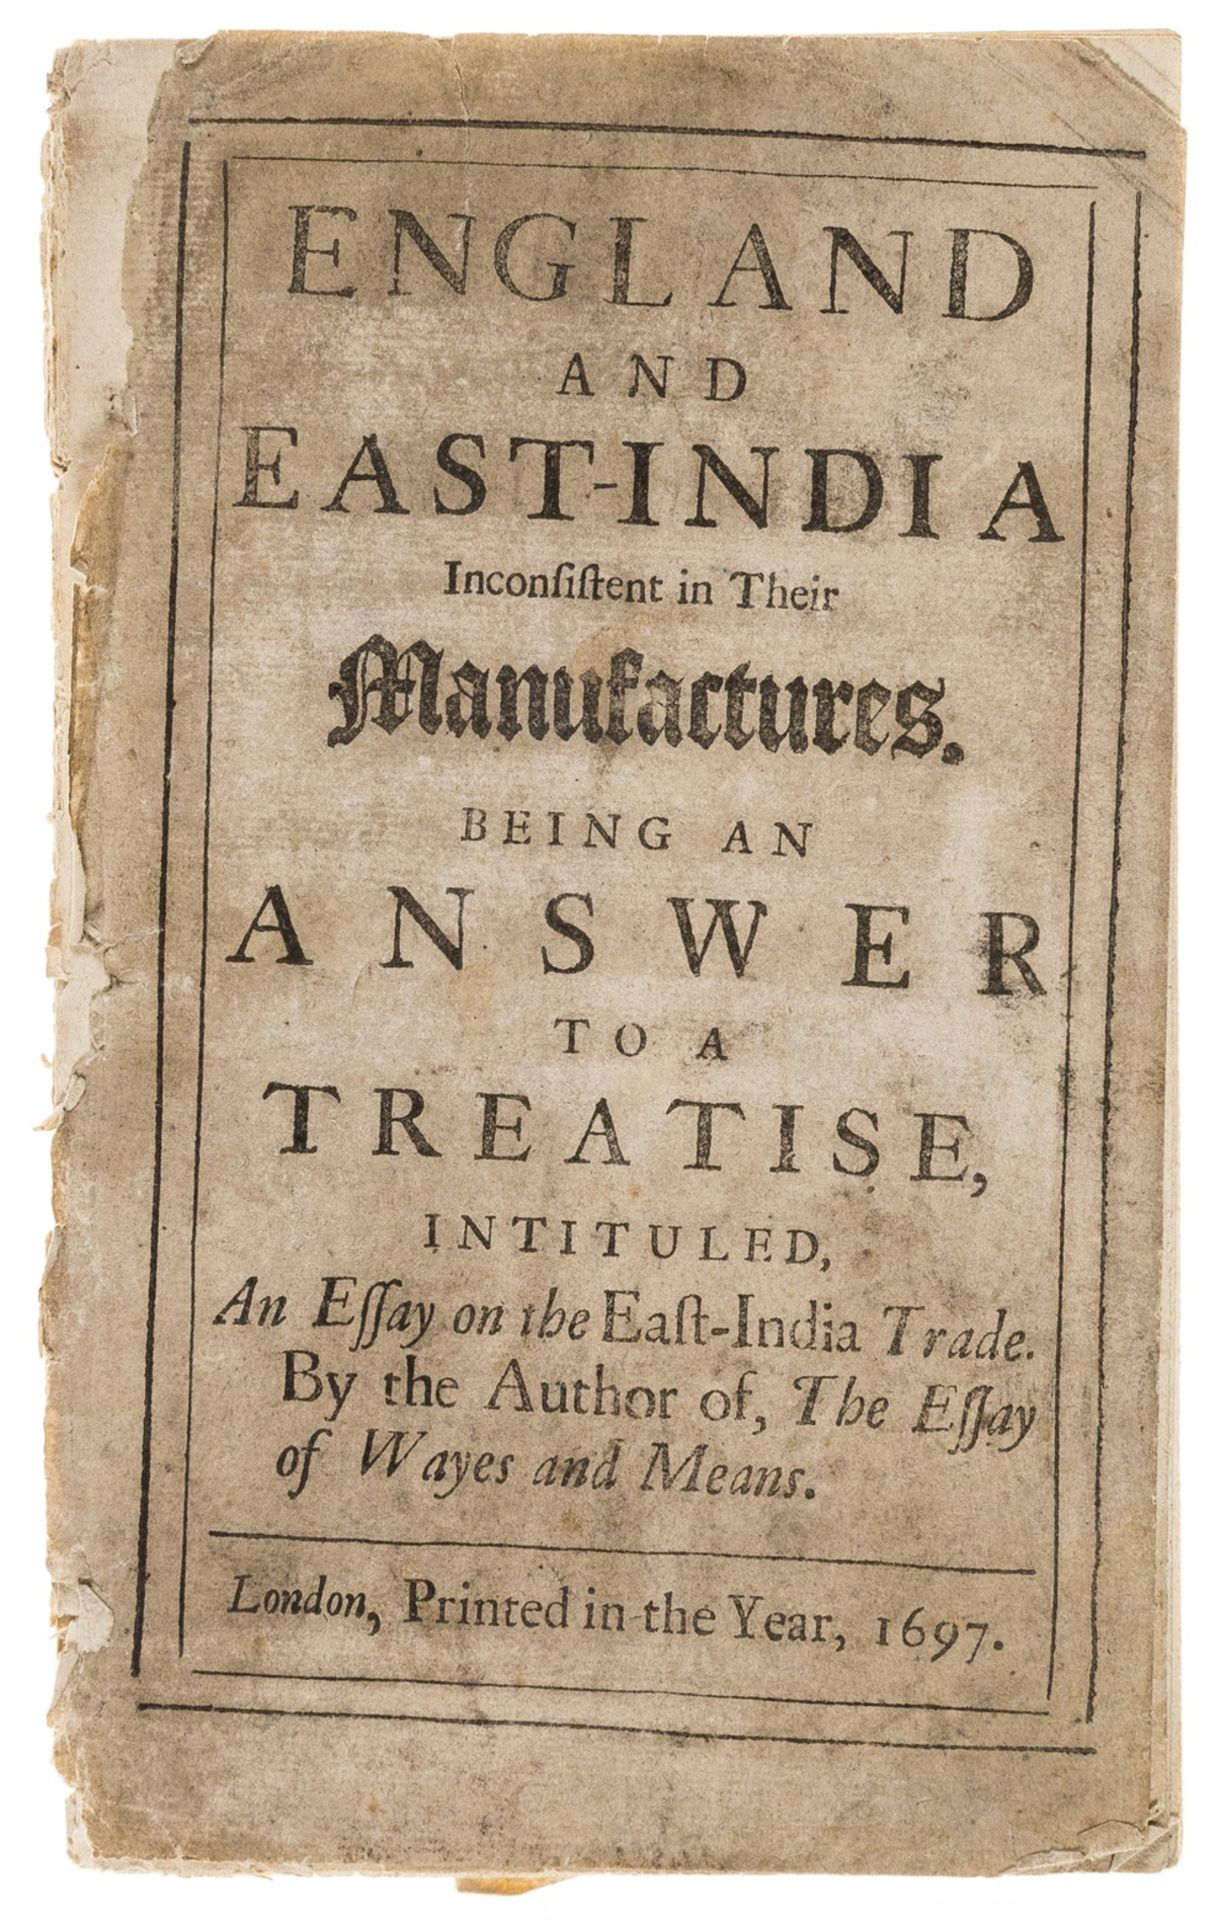 East-India Trade.- [Pollexfen (John)] England and East-India Inconsistent in Their Manufactures, …